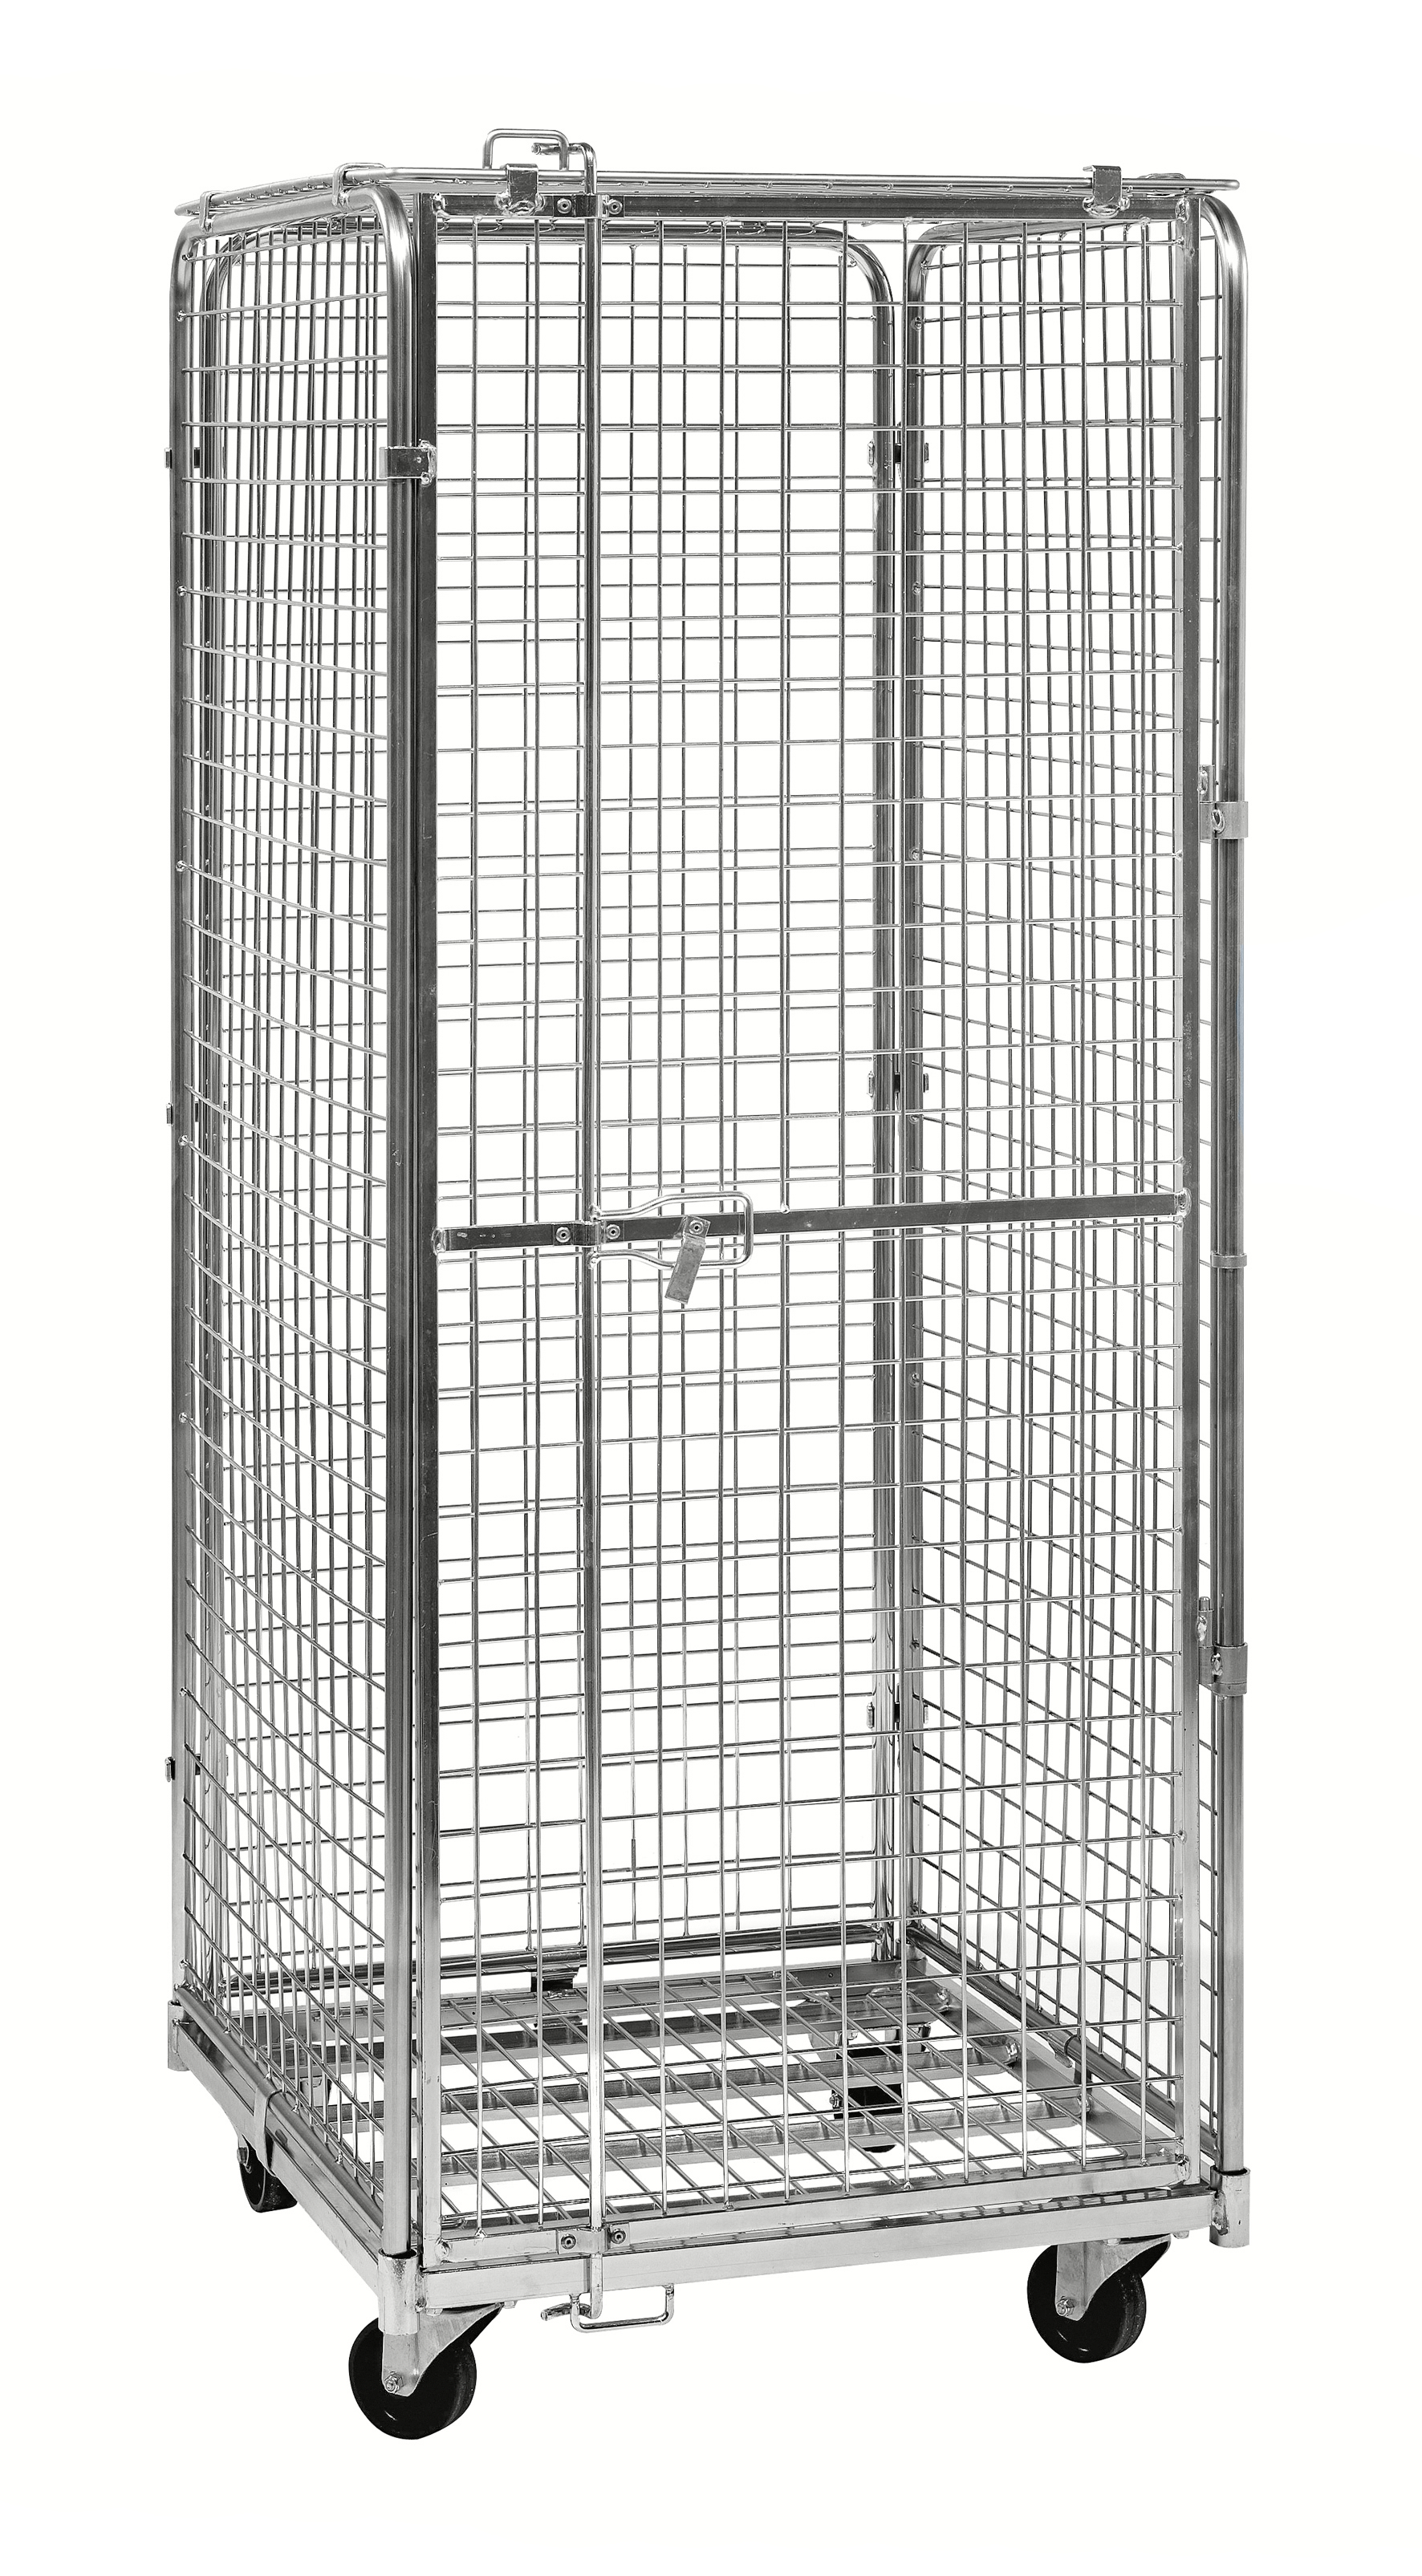 KM1200 | Safety container